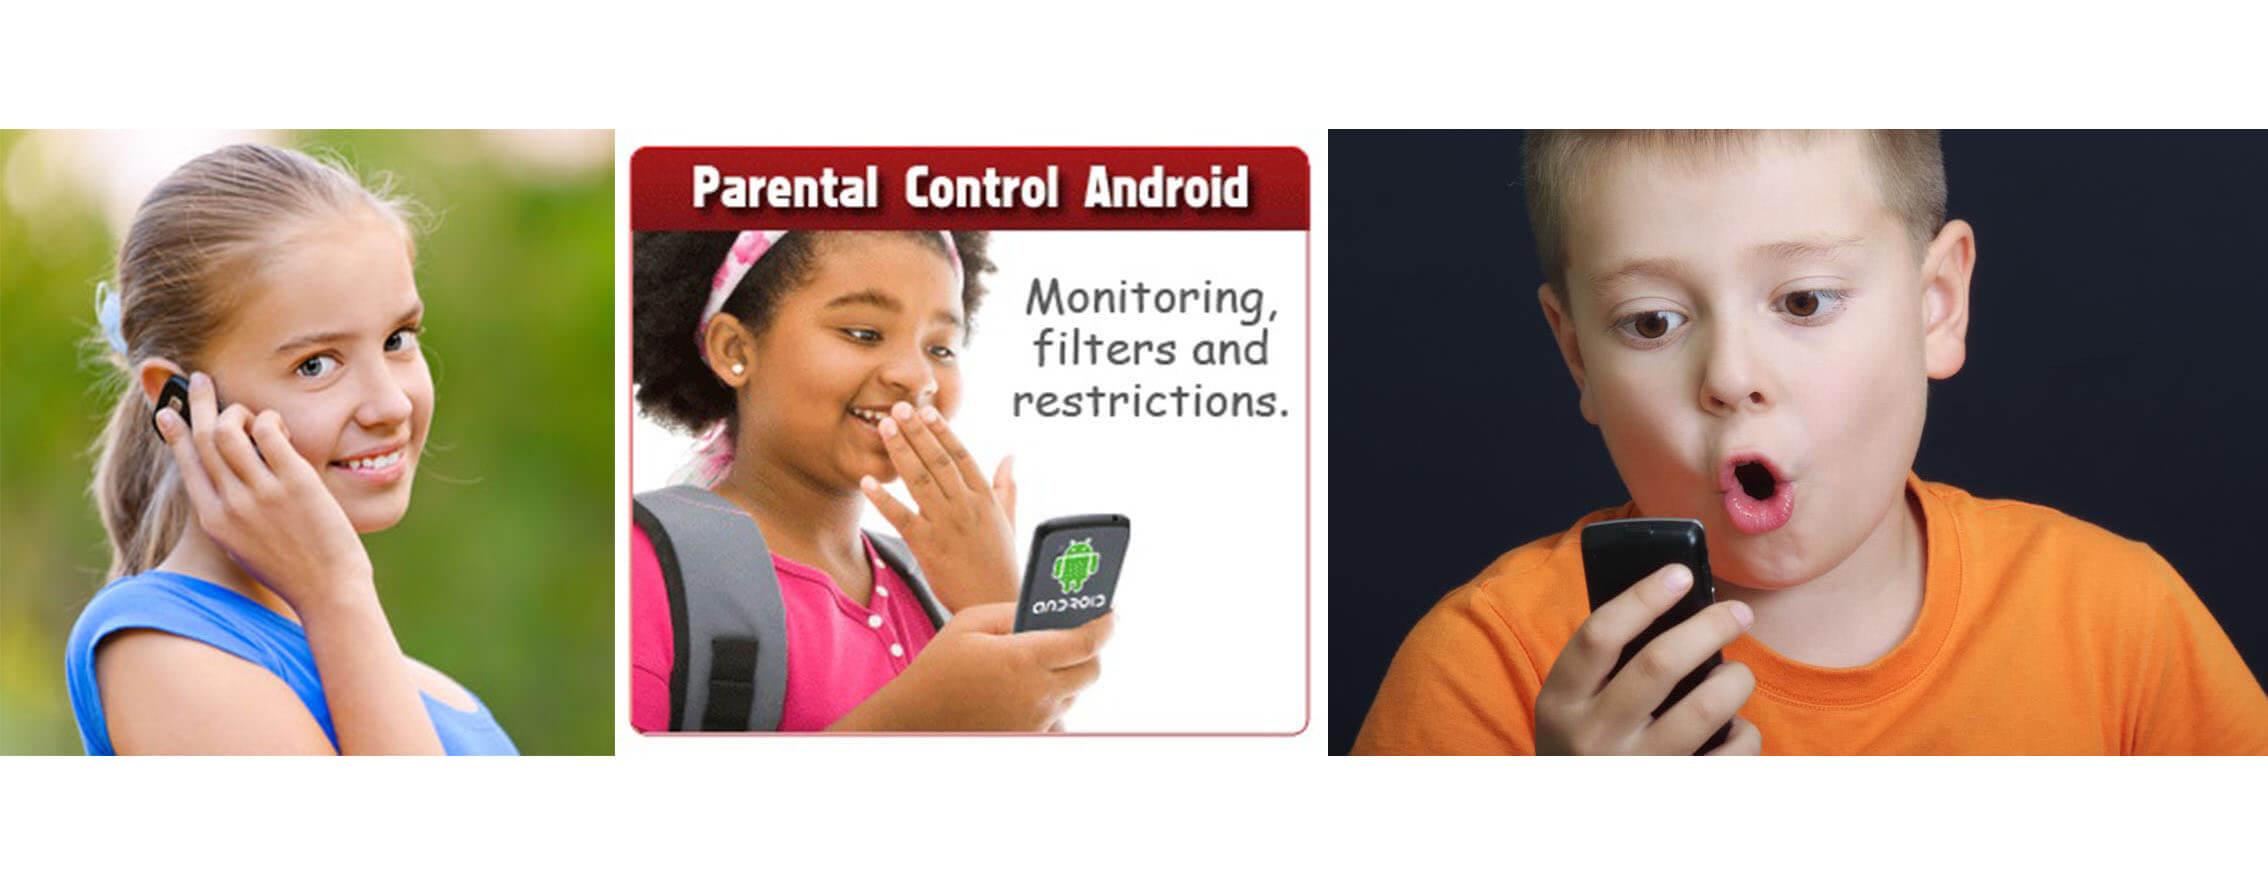 parental control Kids place is an app created for parents who want to monitor their children's activity on phones and tablets, customizing control features and how devices are used.